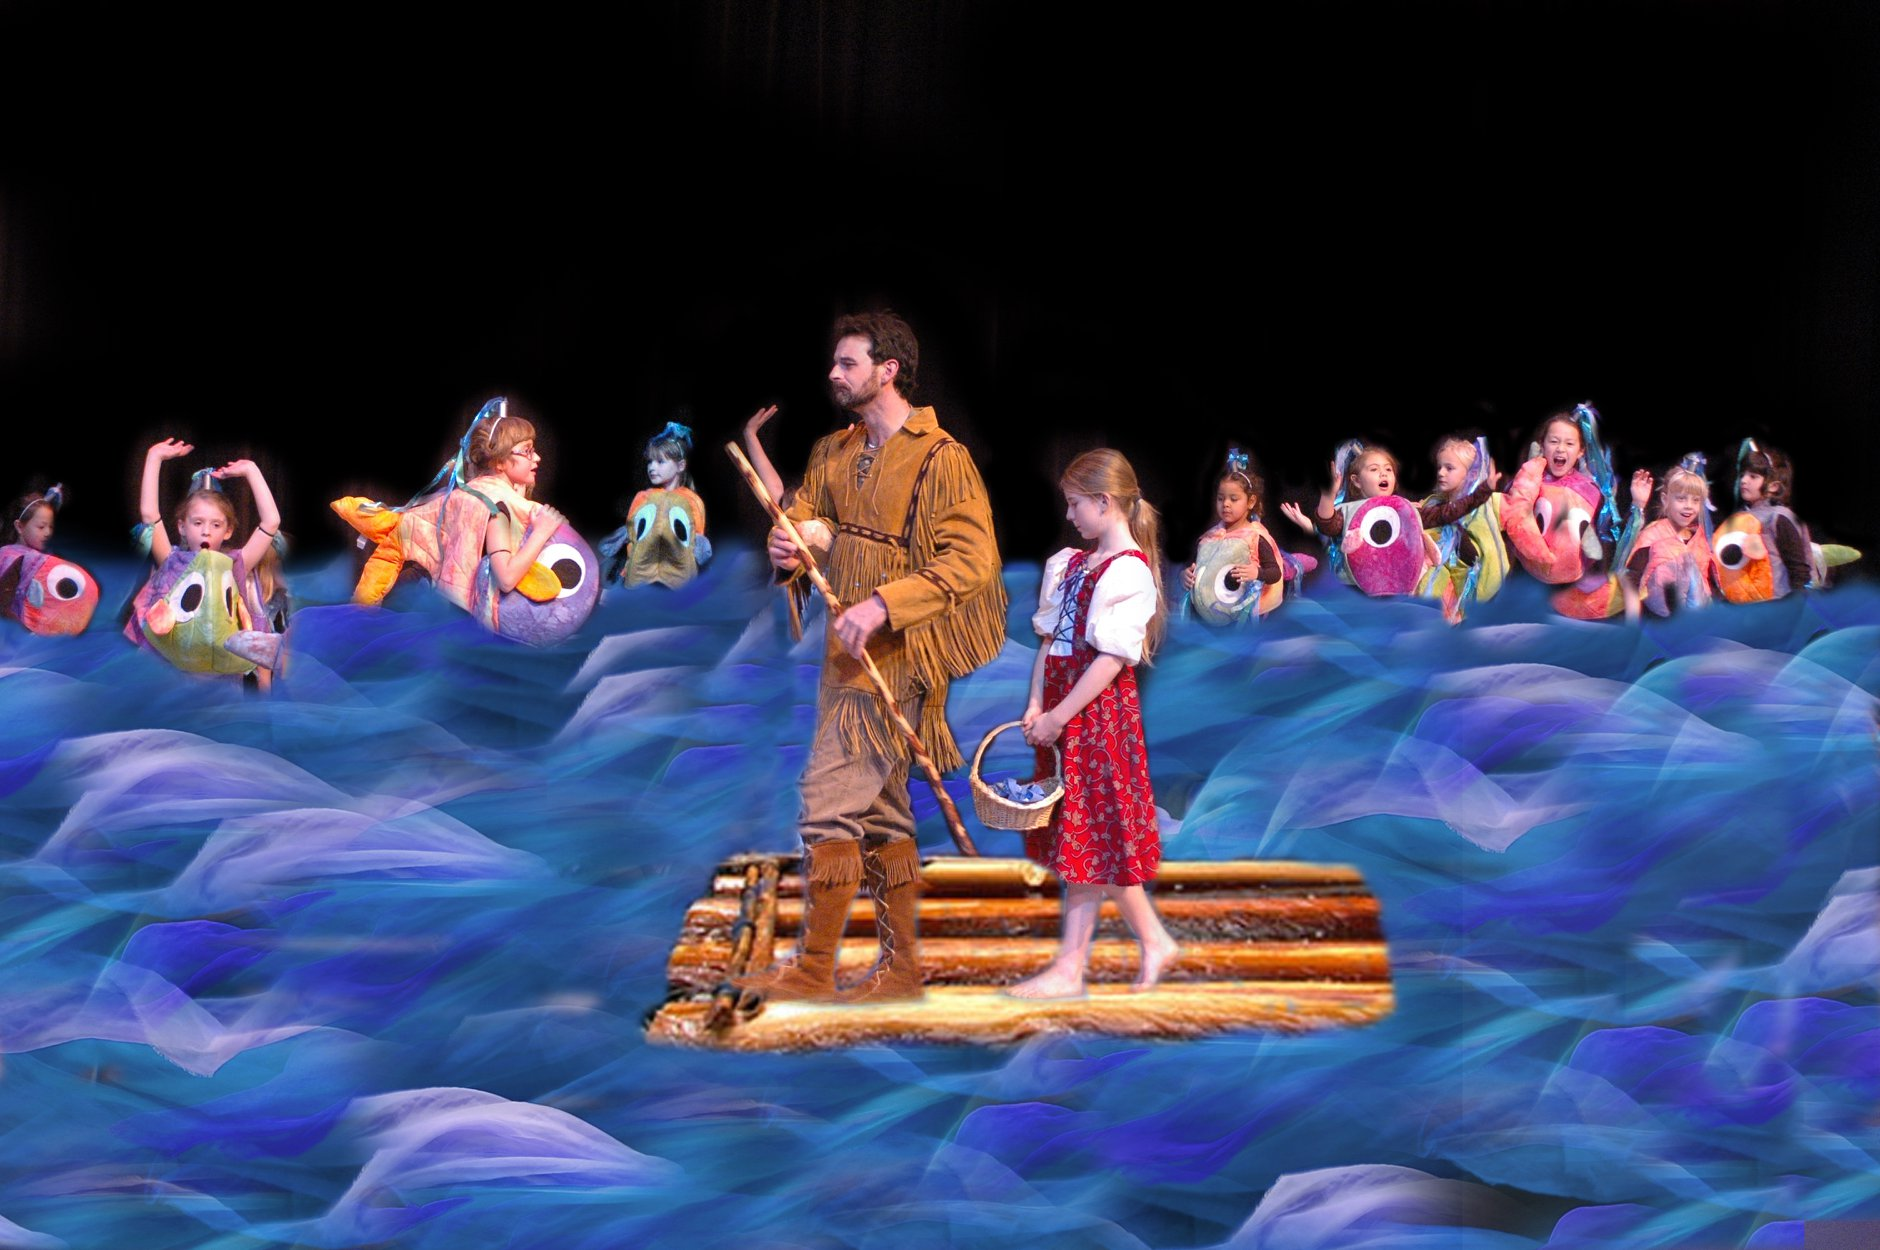 A young girl rides a raft with a man paddling through a school of tiny dancers dressed as fish.